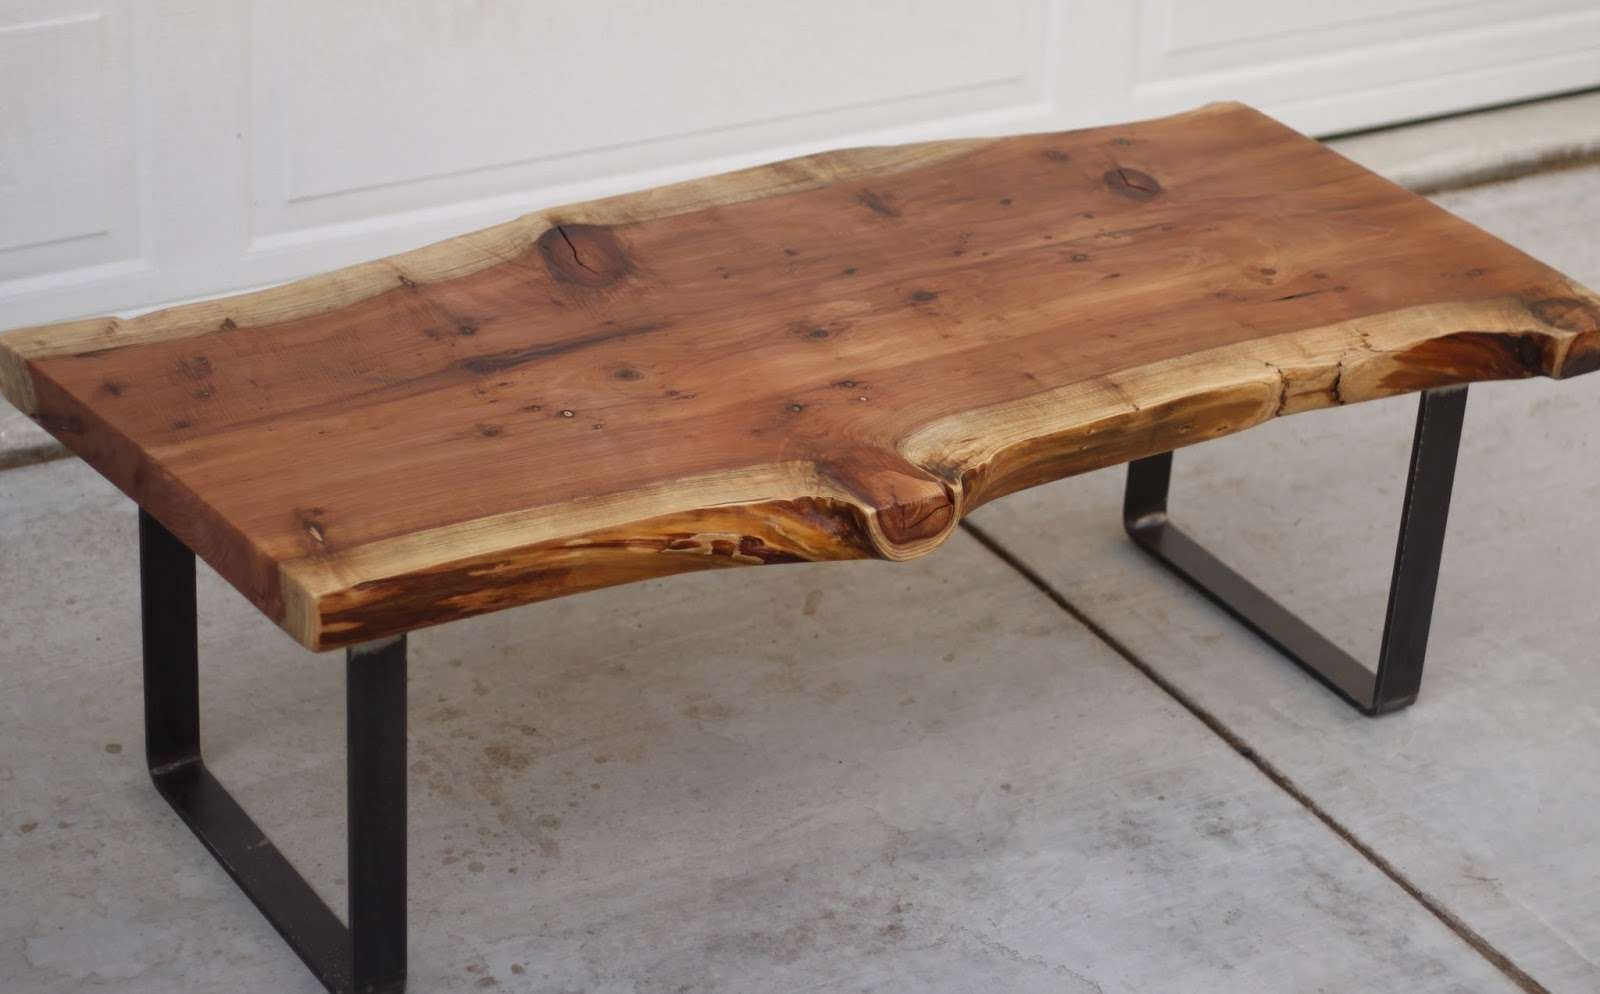 Newest Natural Wood Coffee Tables With Regard To Gaining The Natural Power With Round Wood Coffee Table (View 6 of 20)